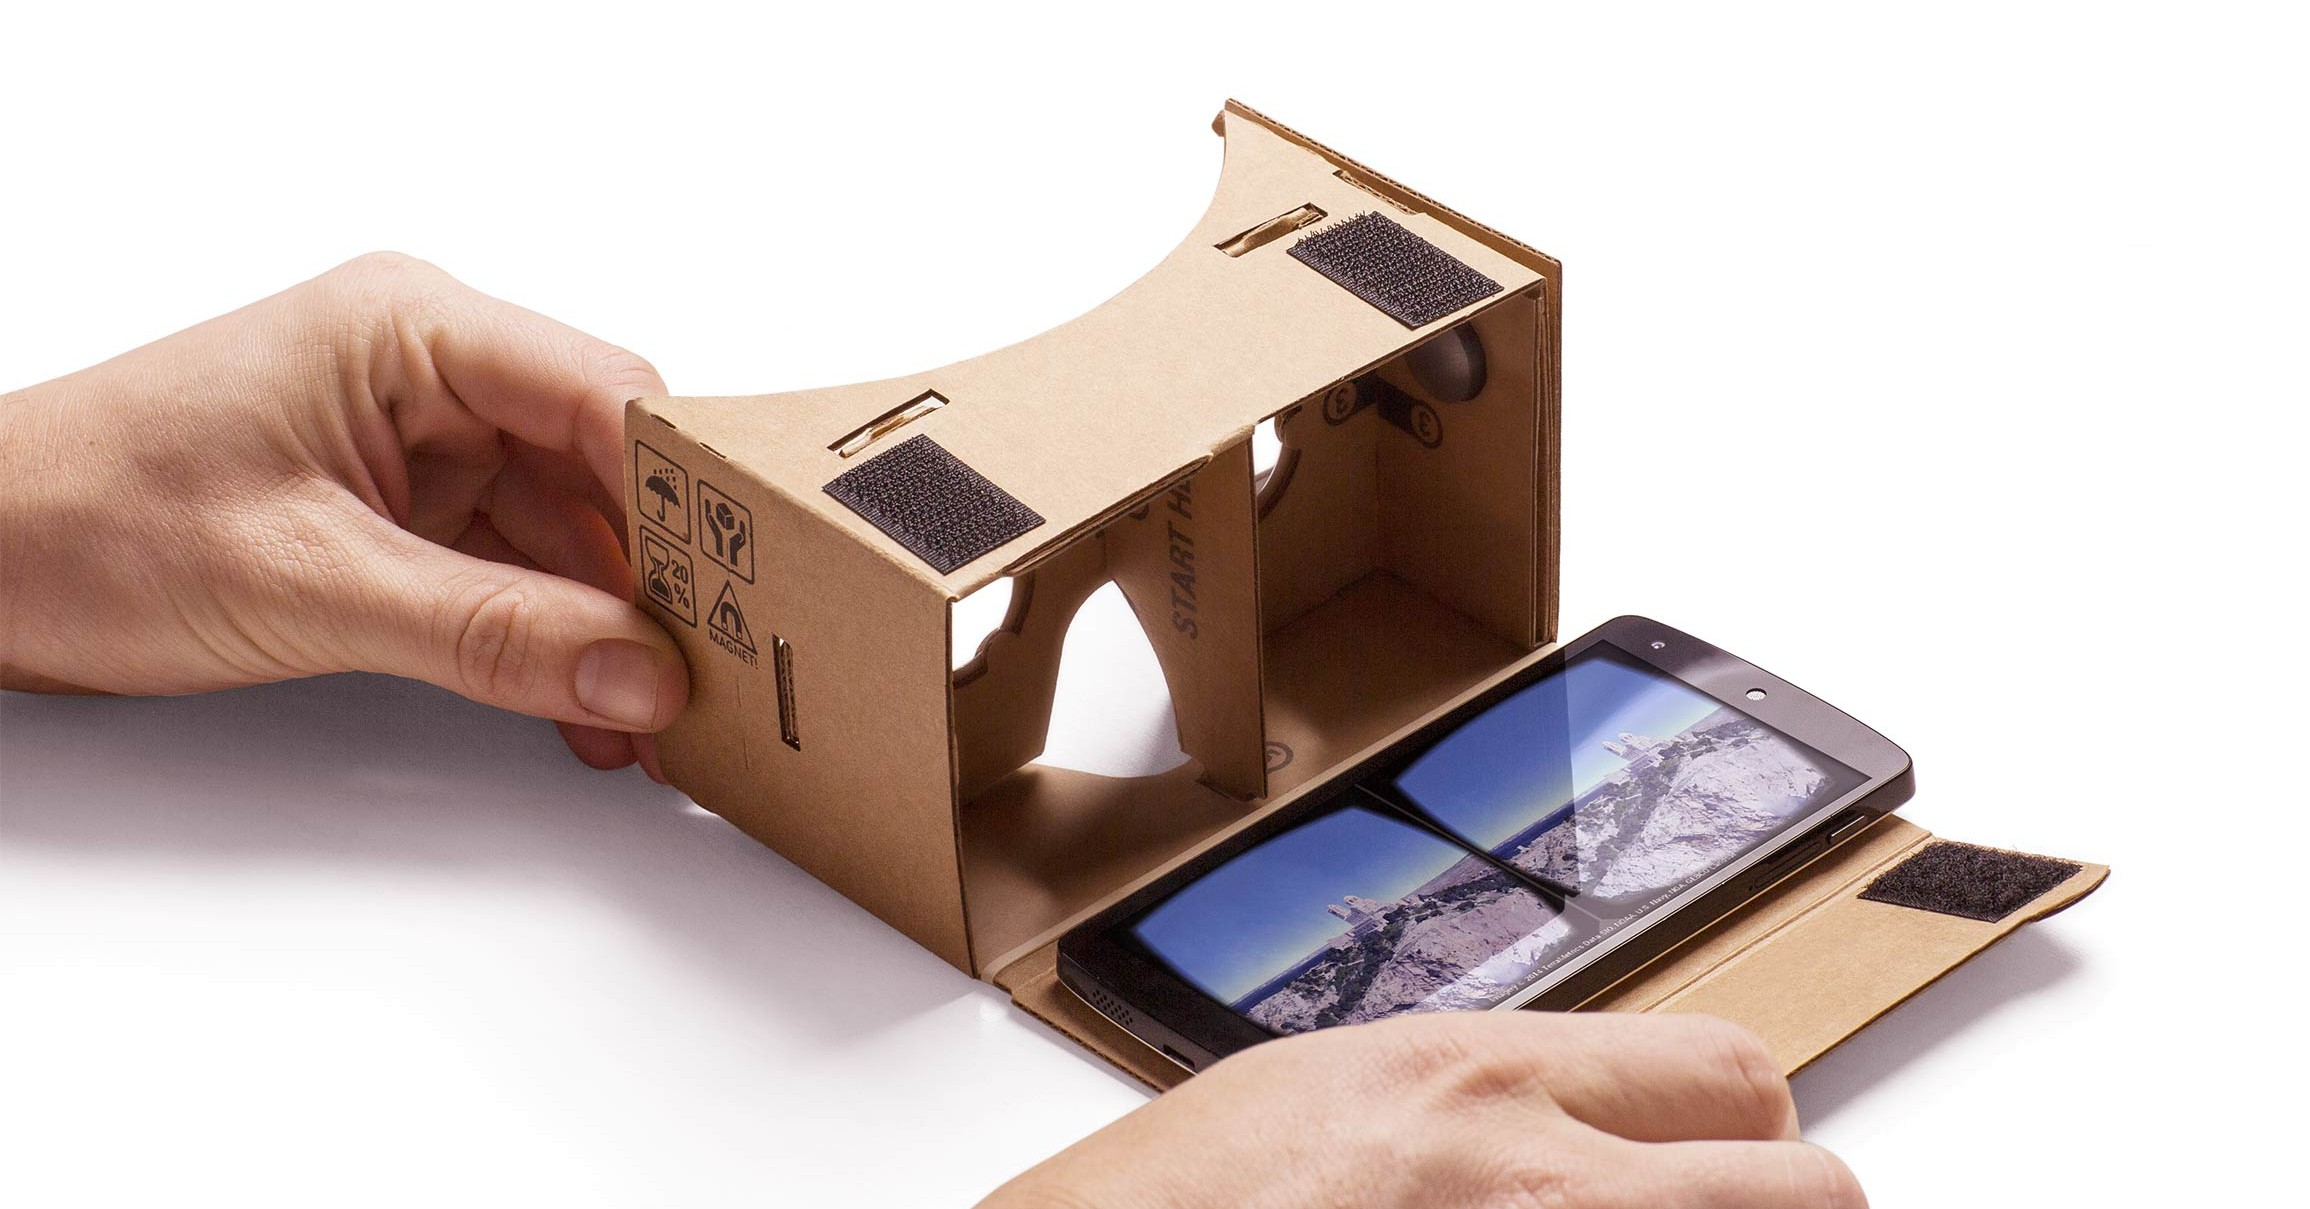 Google launches new VR headset